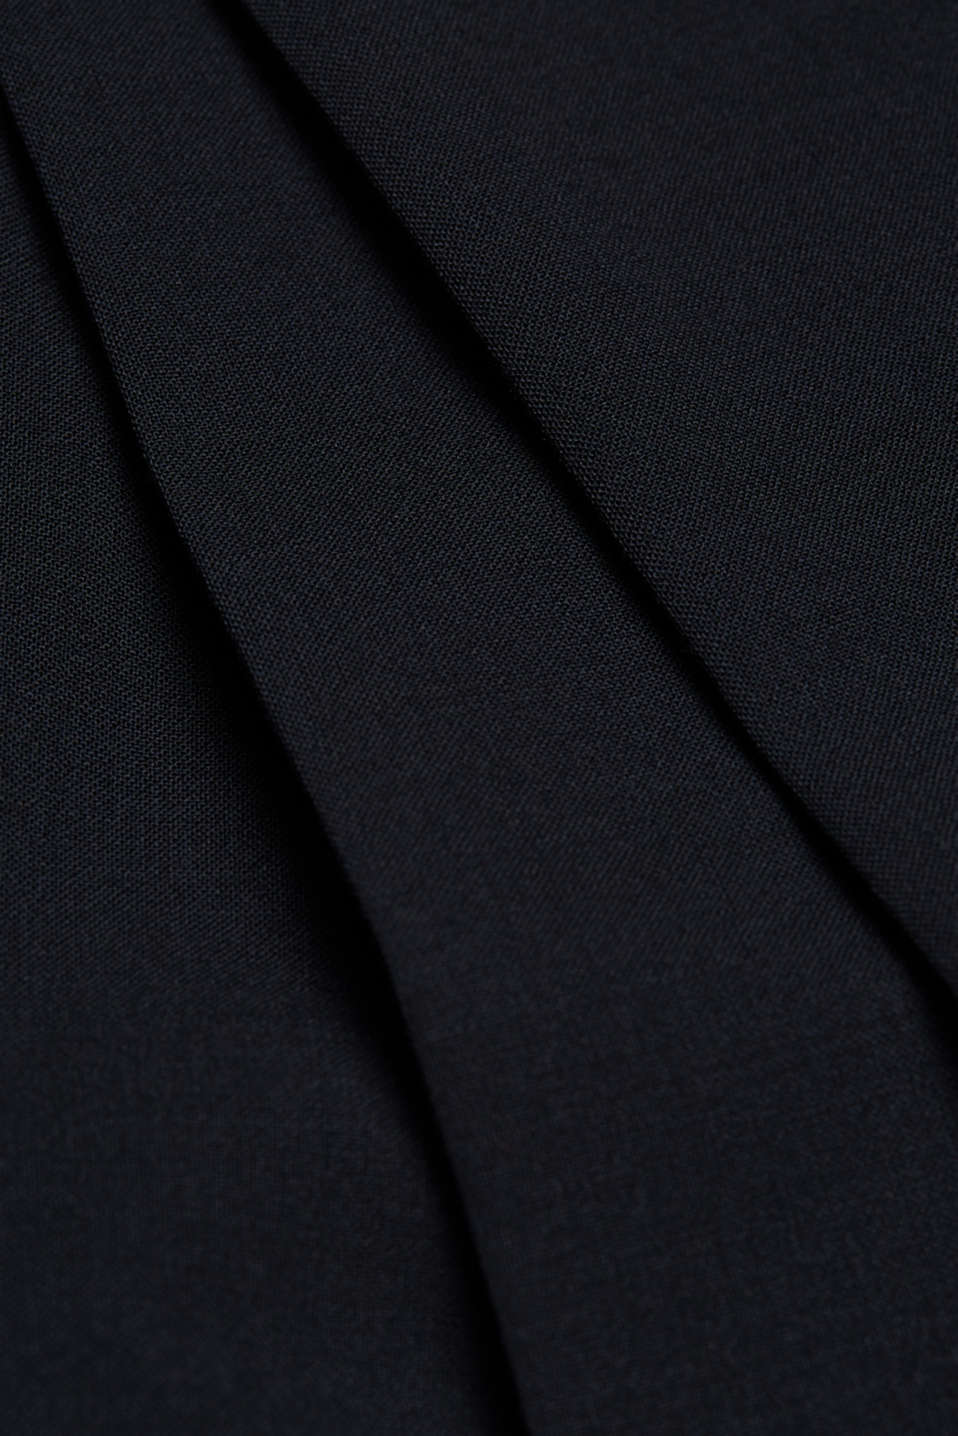 ACTIVE SUIT trousers made of blended wool, DARK BLUE, detail image number 4